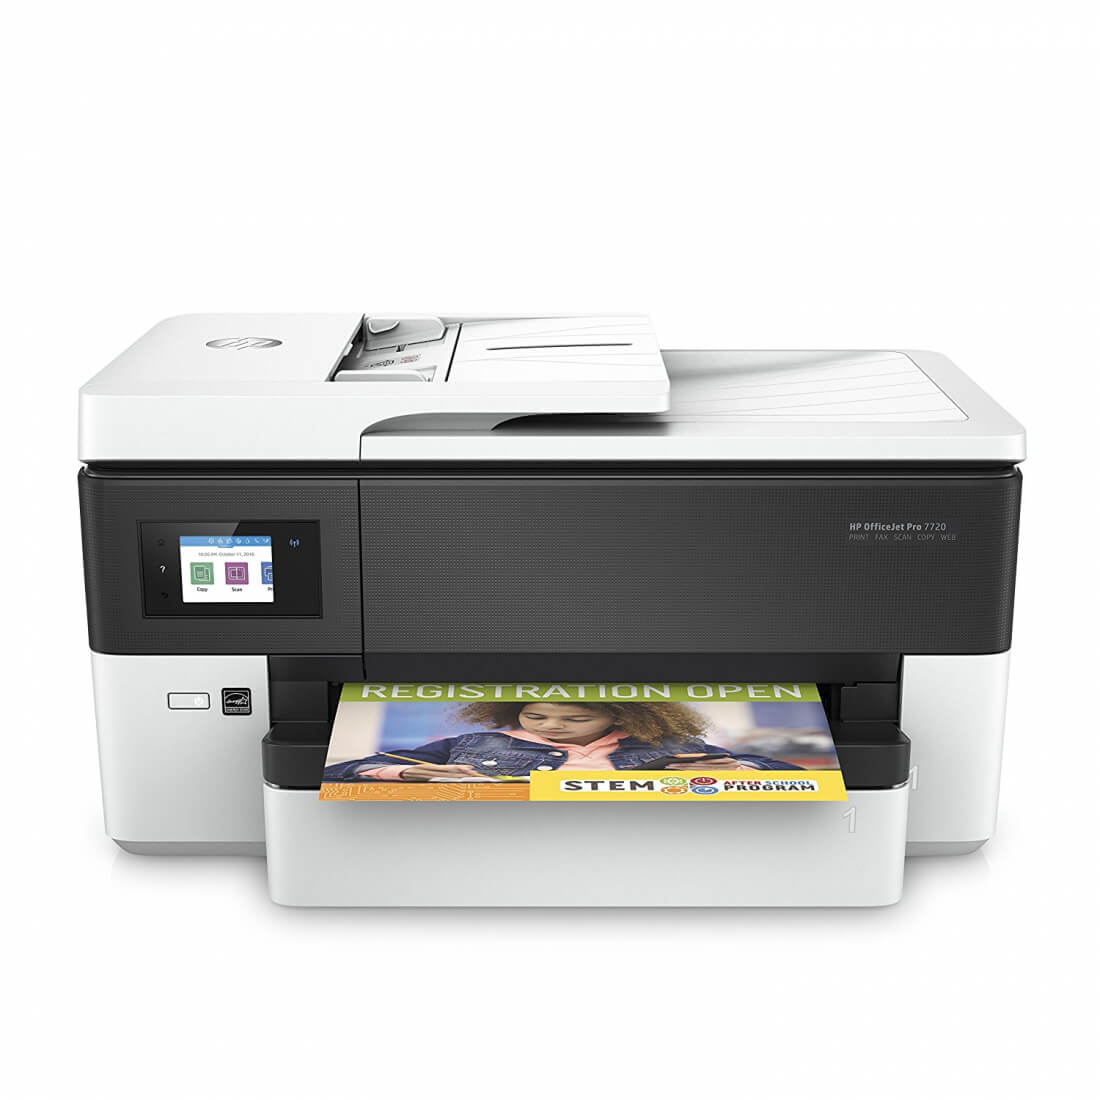 HP OfficeJet Pro 7720 All-in-One Series